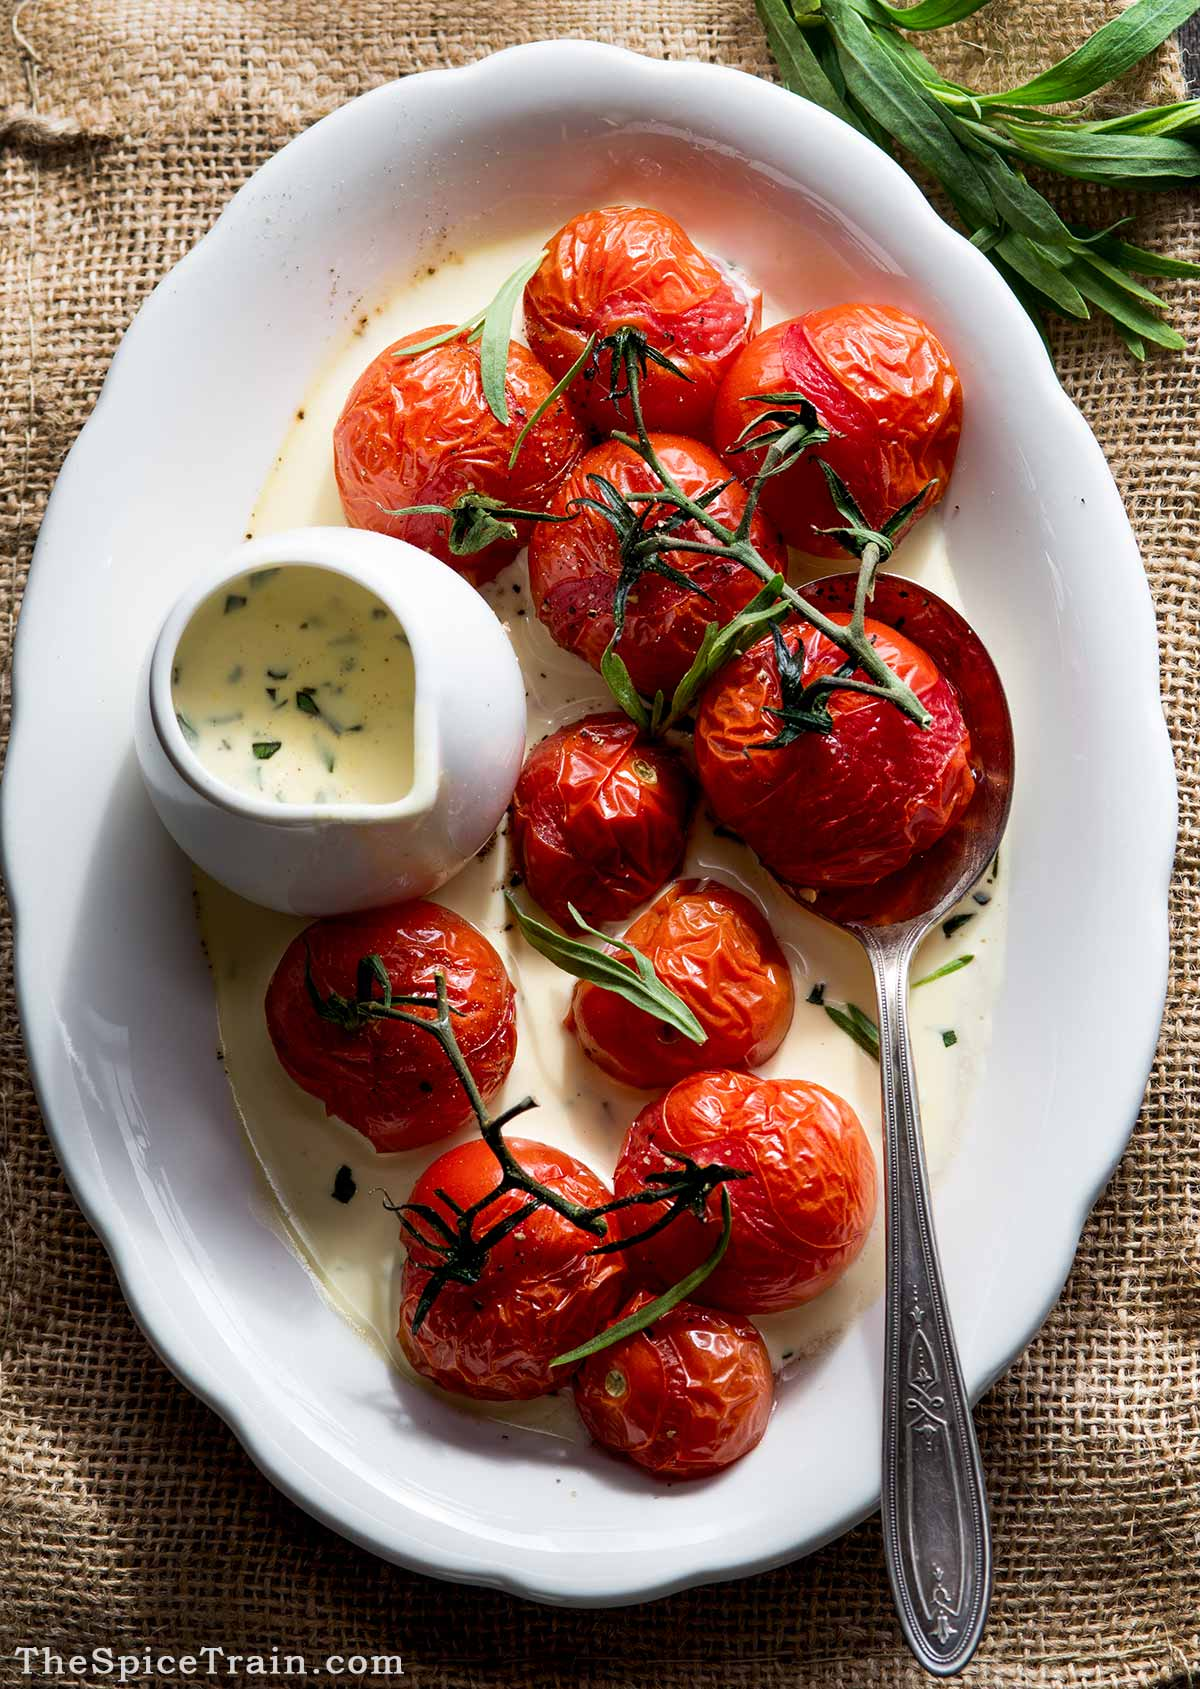 A serving plate with roasted tomatoes and tarragon cream sauce.